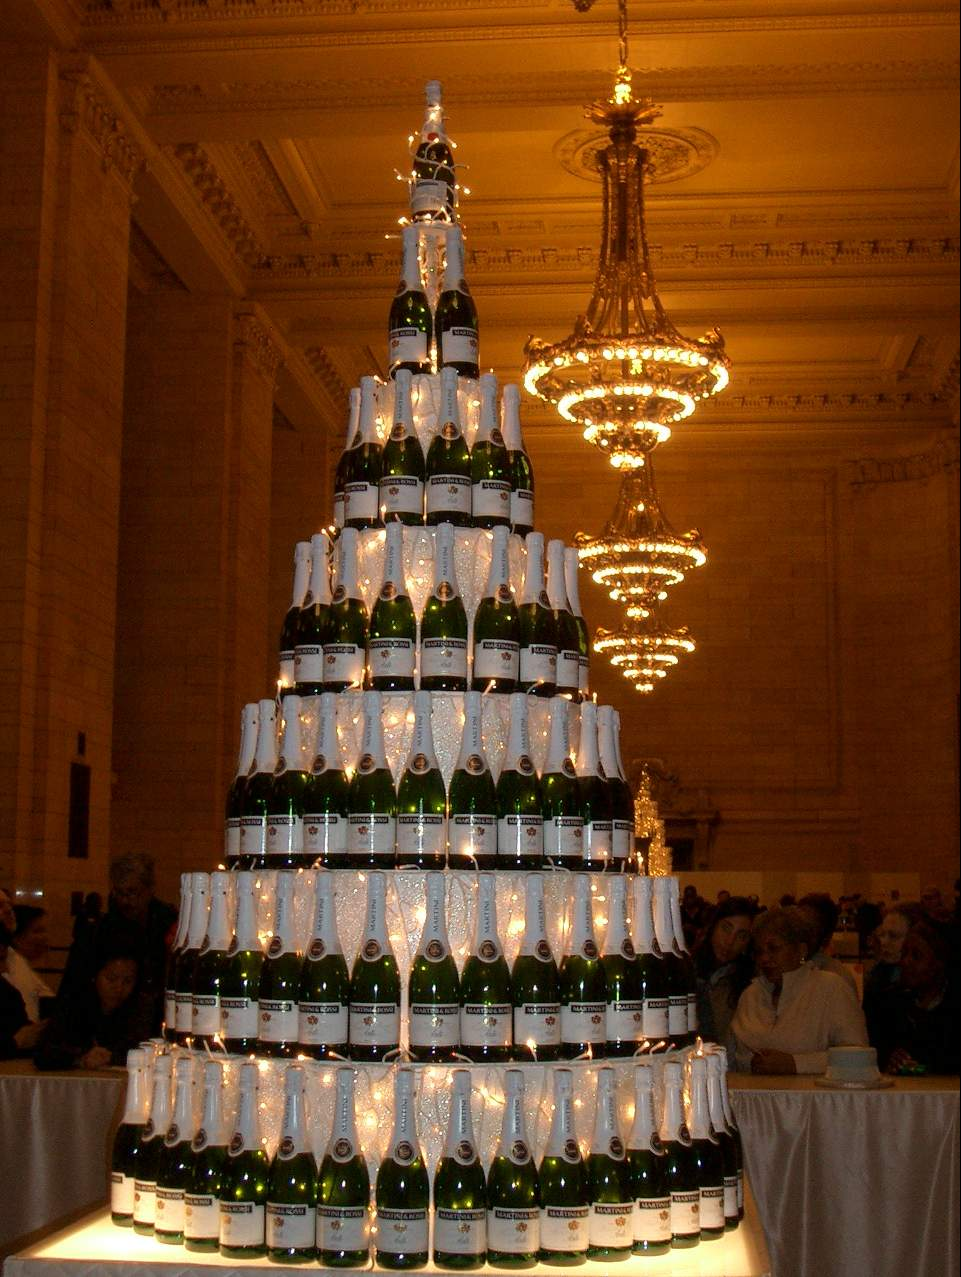 062%20%20champagne%20tower